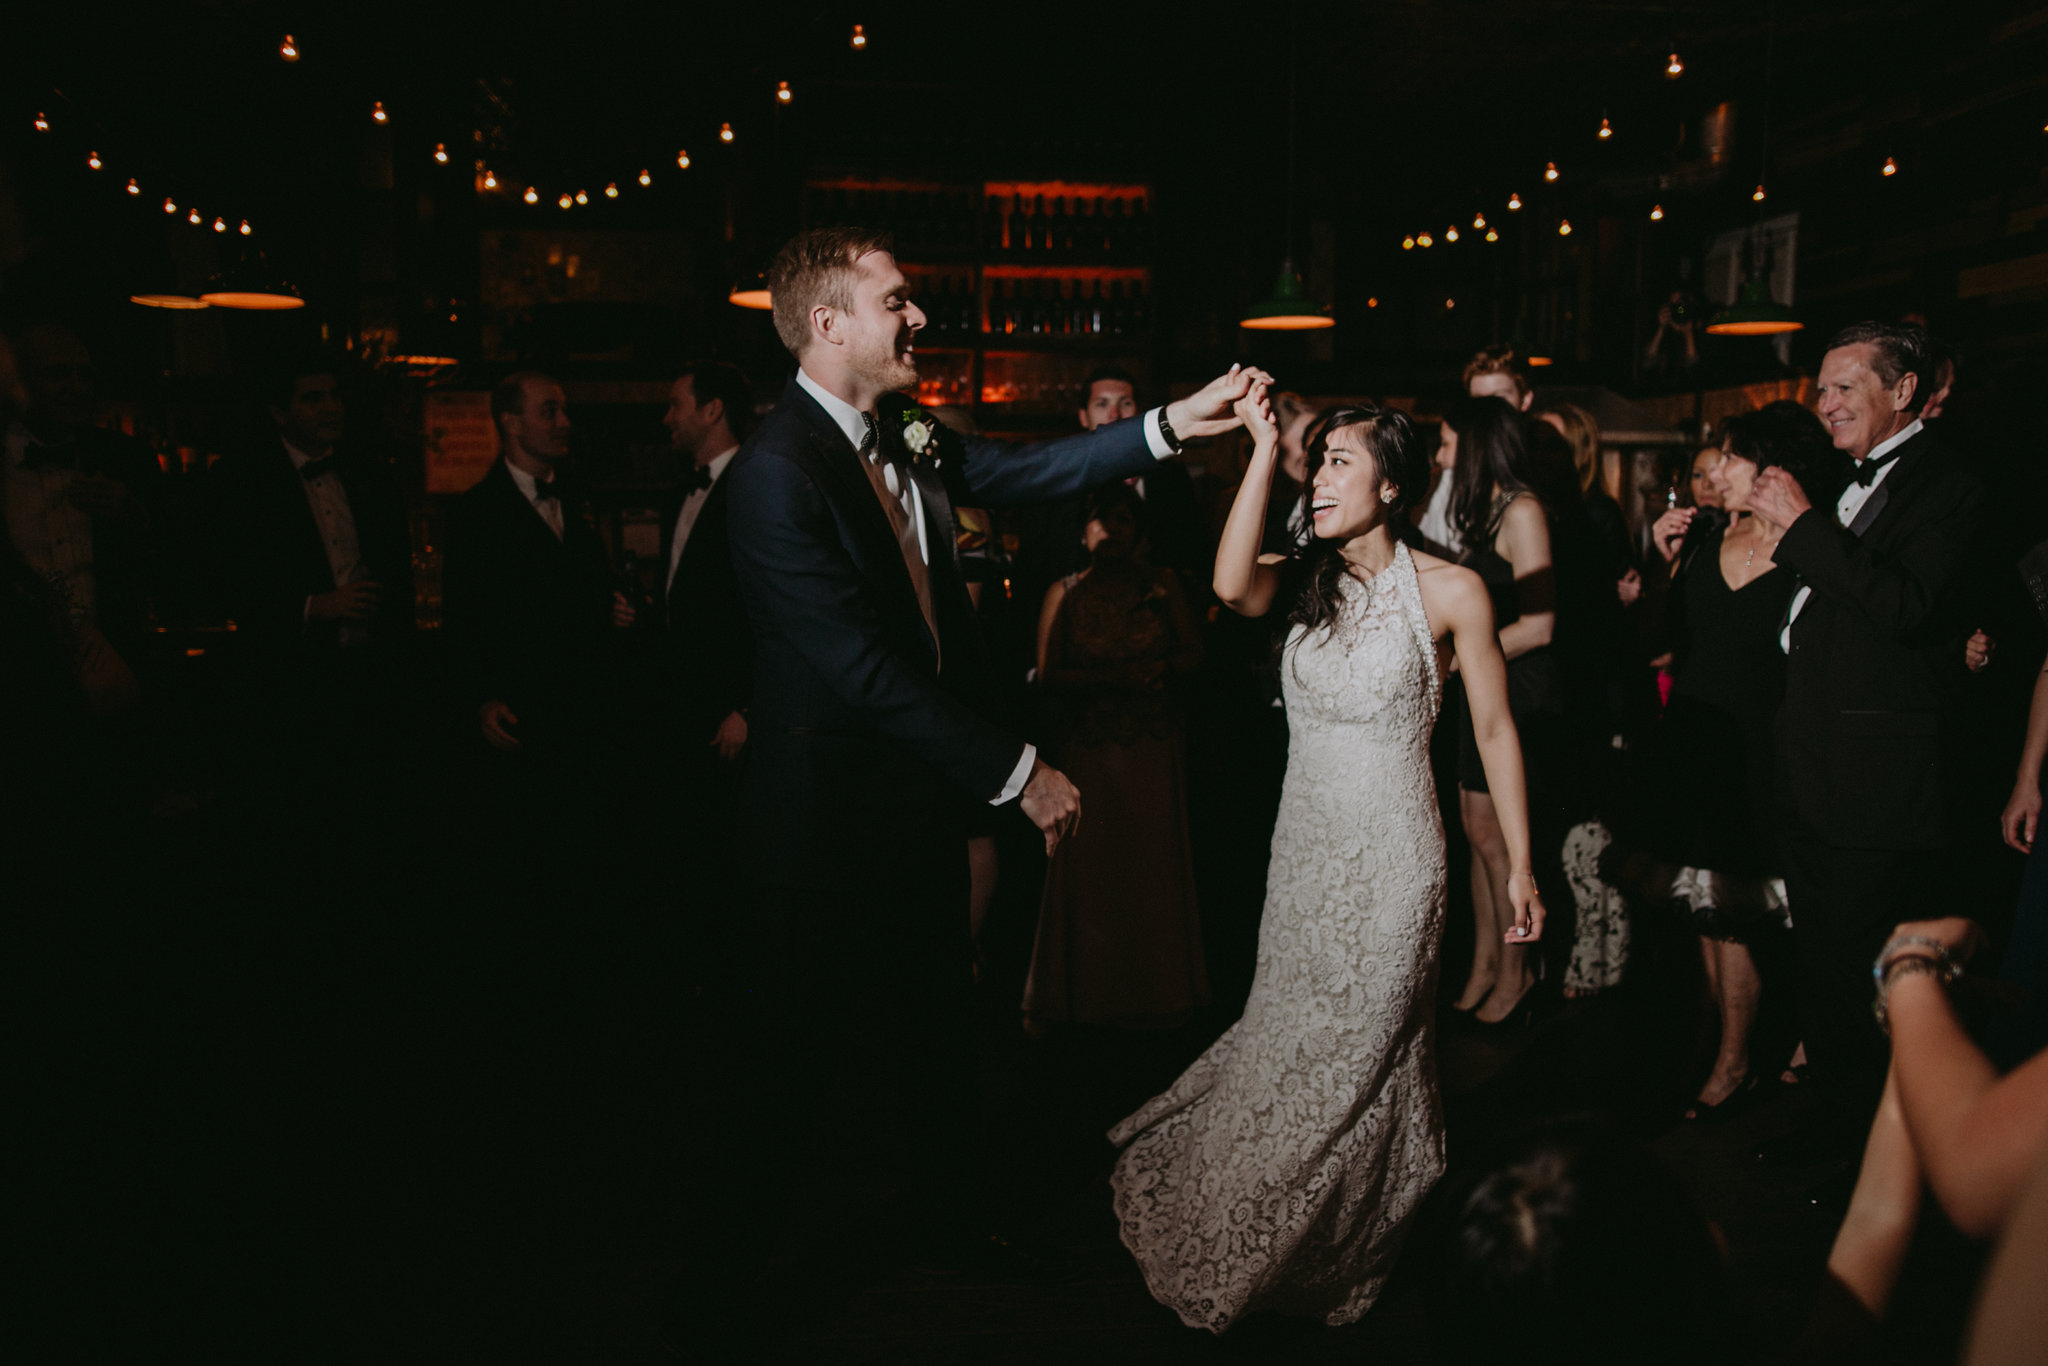 Brooklyn_Winery_Wedding_Chellise_Michael_Photography0894.JPG